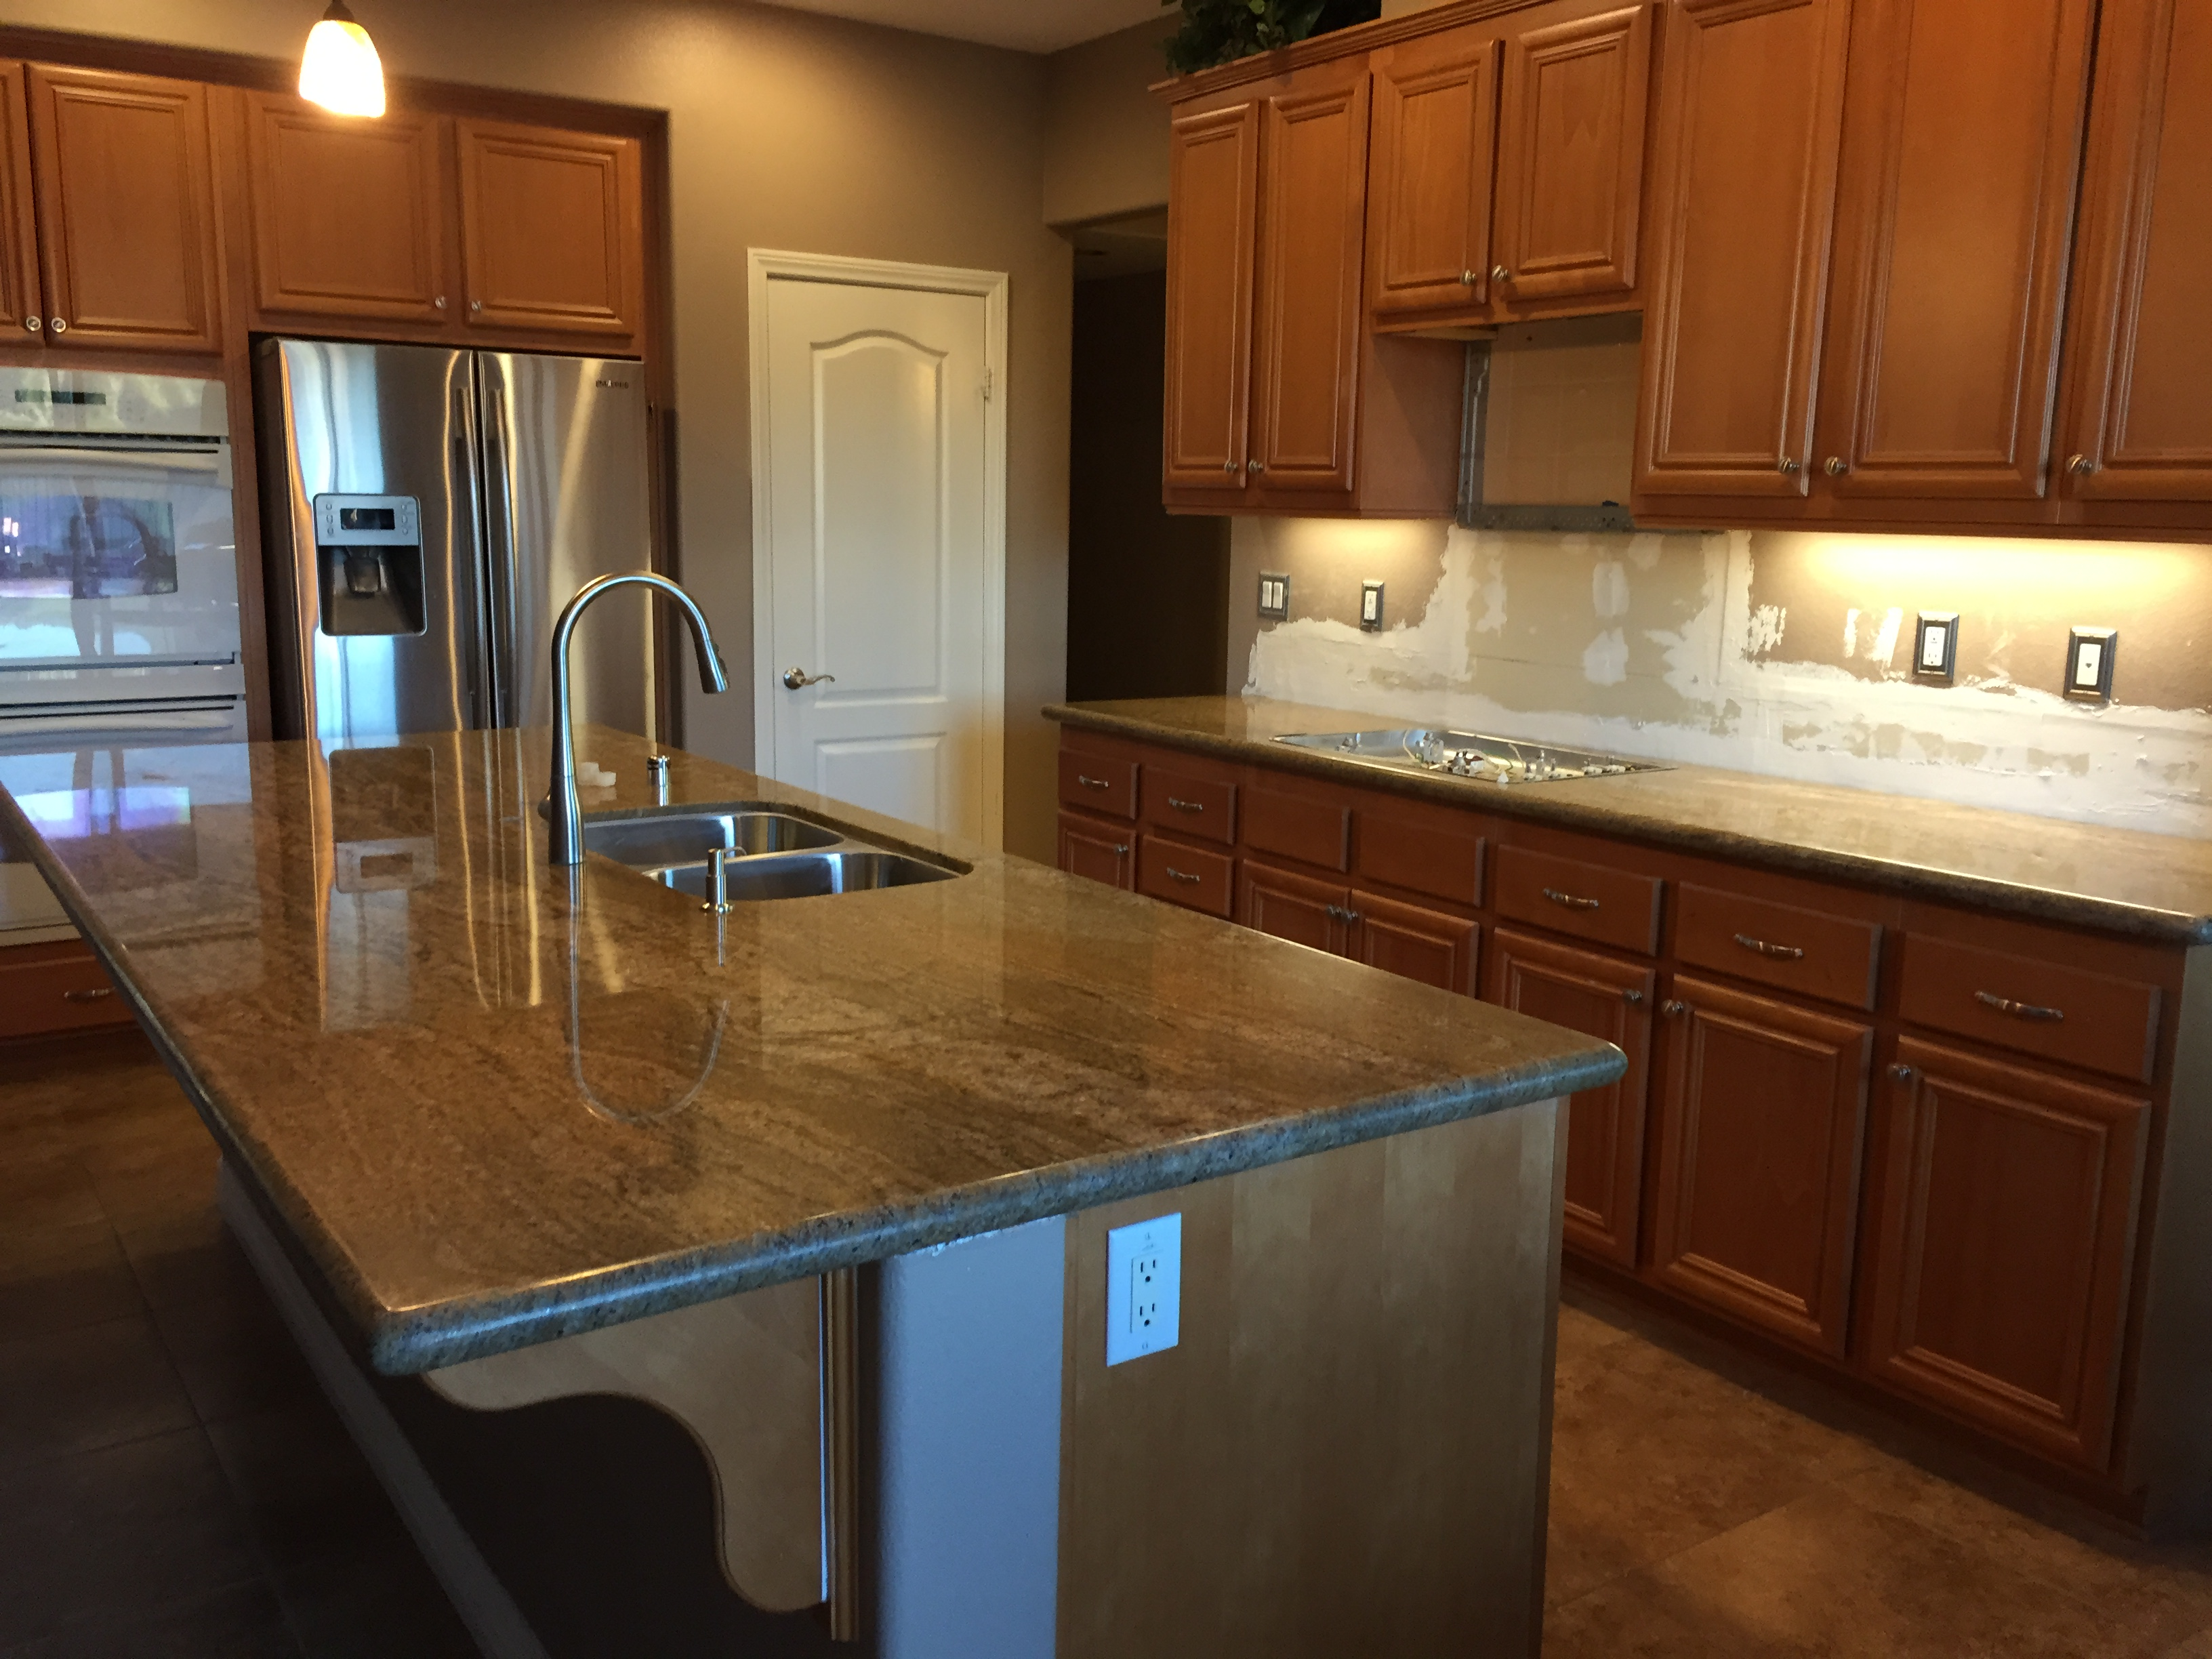 Kitchen Big Island Imperial Gold Granite Counter Tops | Santa Clarita